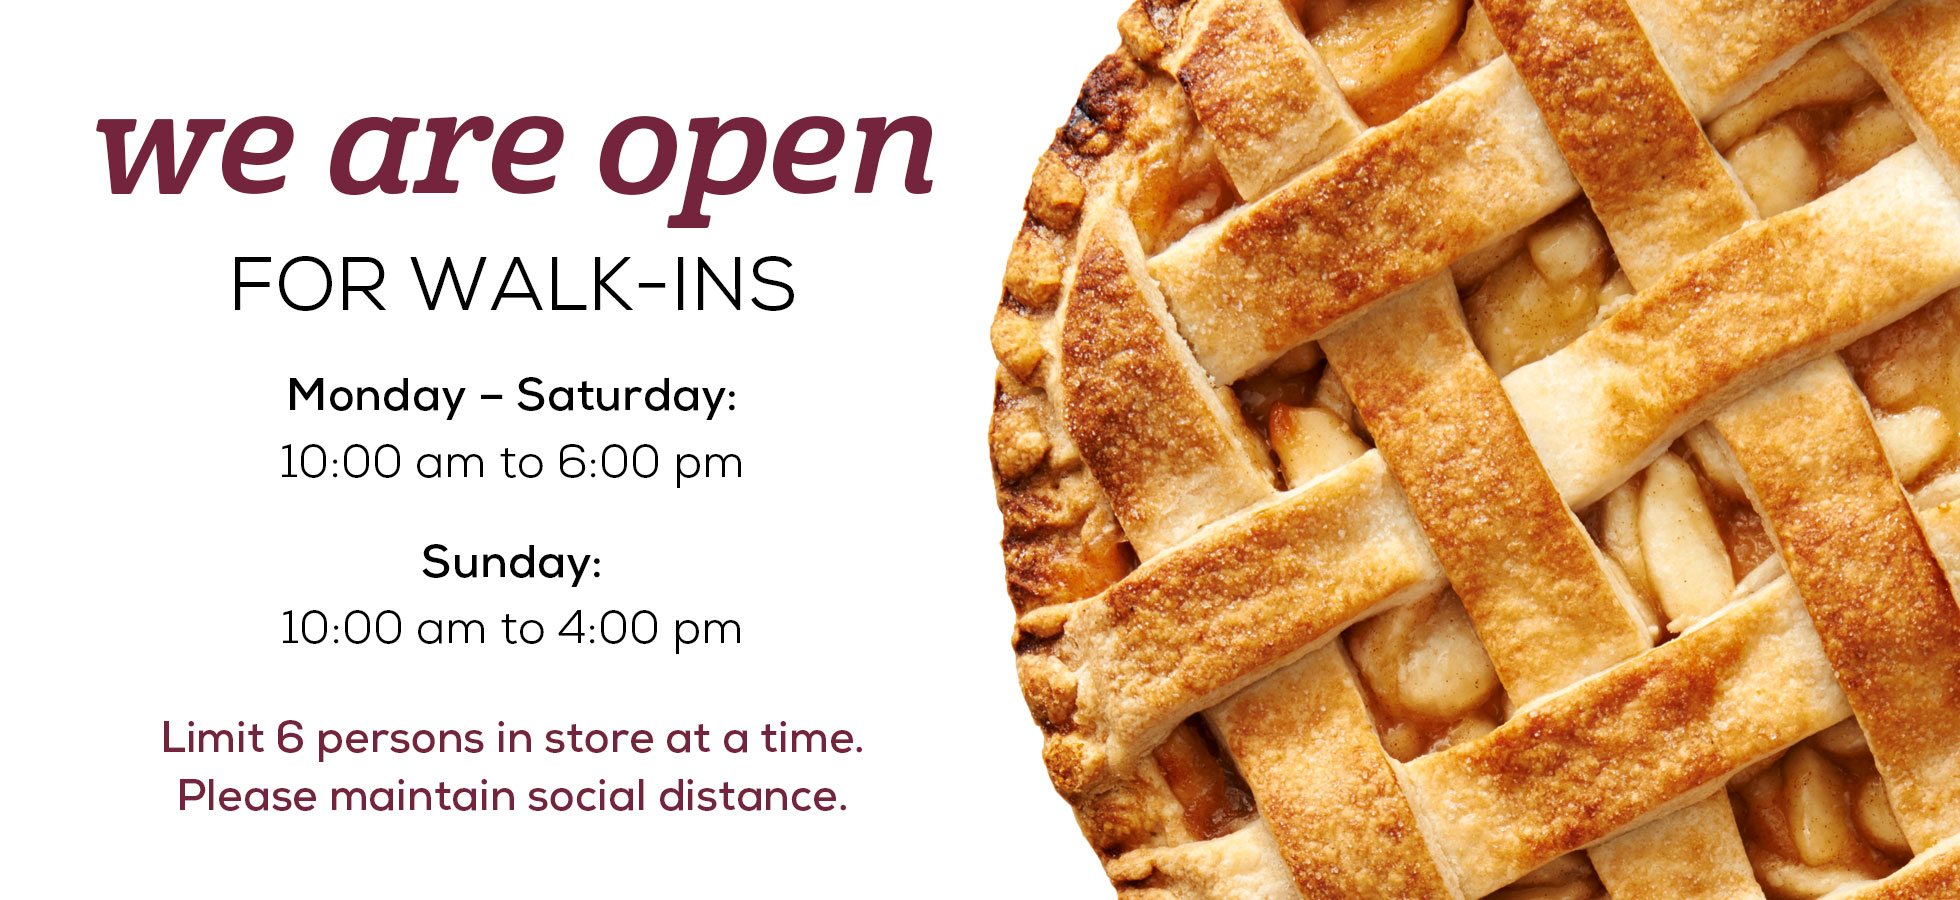 We Are Open for Walk-Ins. See our new hours.